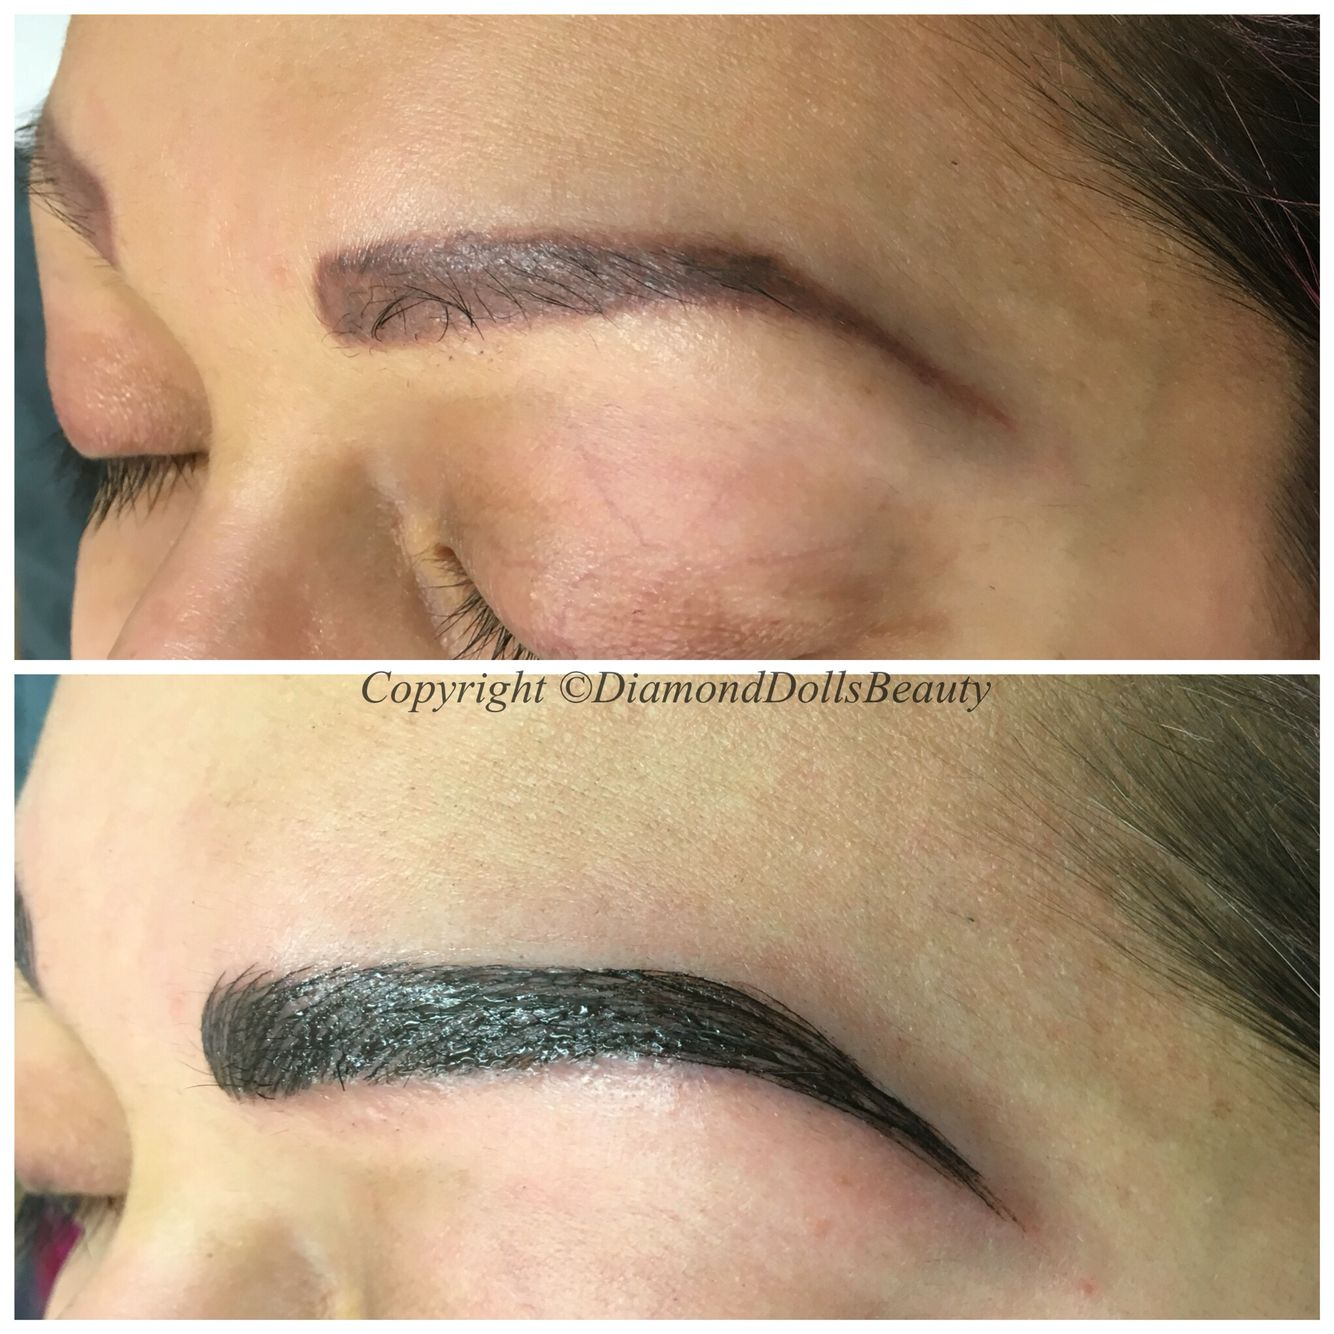 Microblade brows over faded tattoo brows by Diamond Dolls